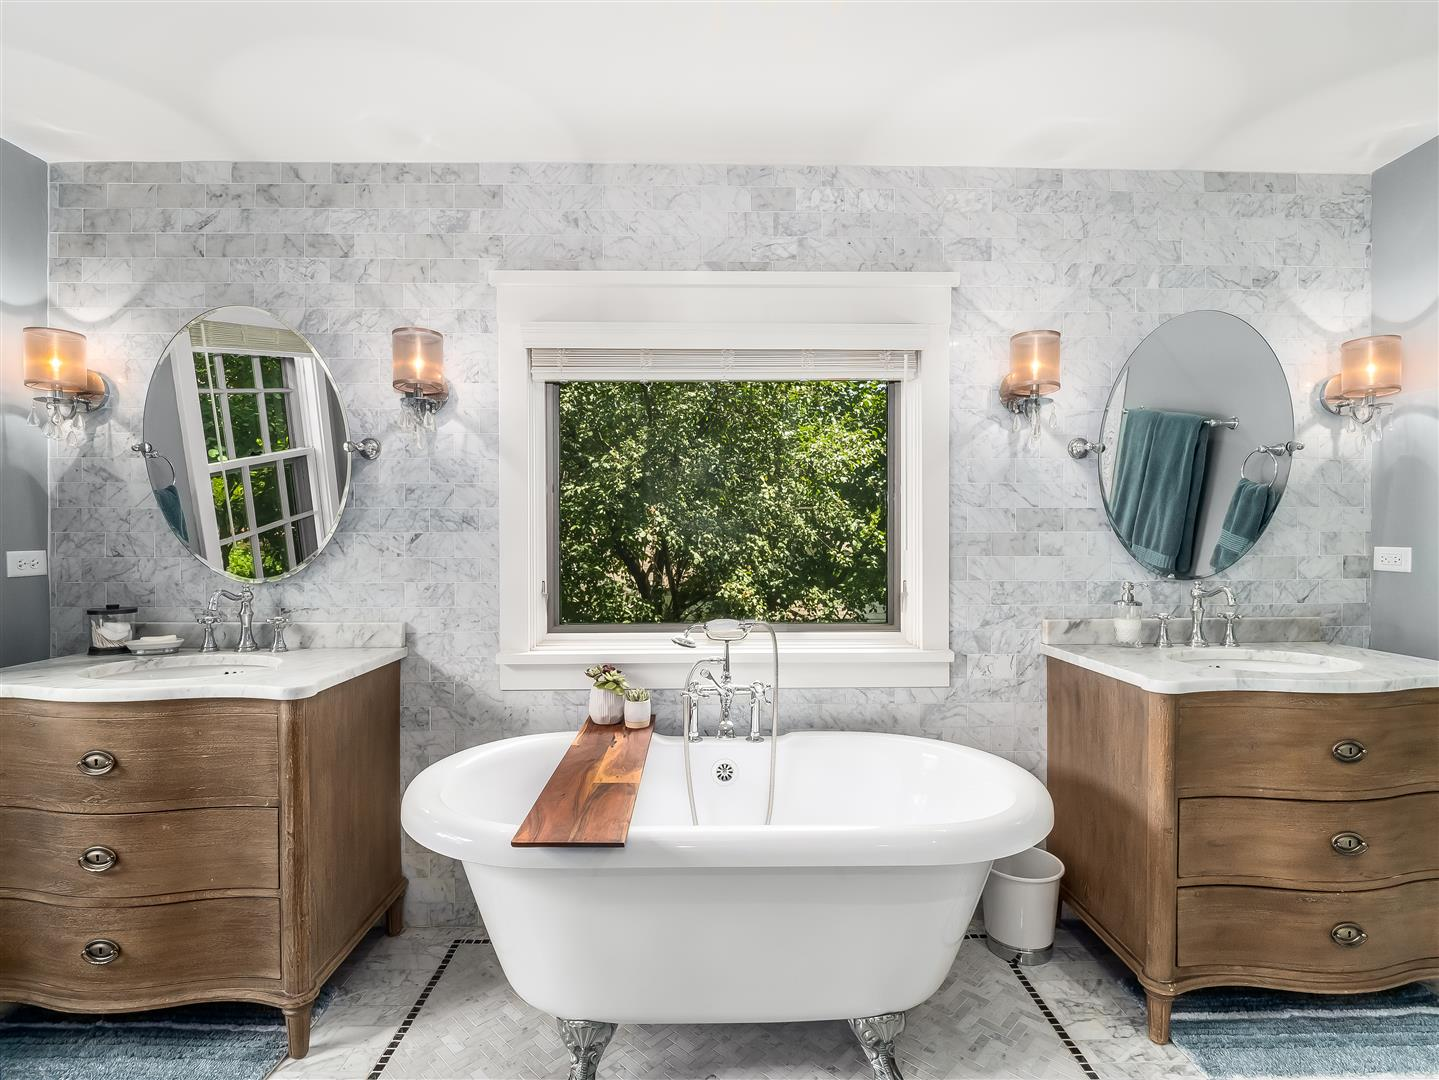 Claw foot tub under a picture window, flanked on either side by a single sink vanity.